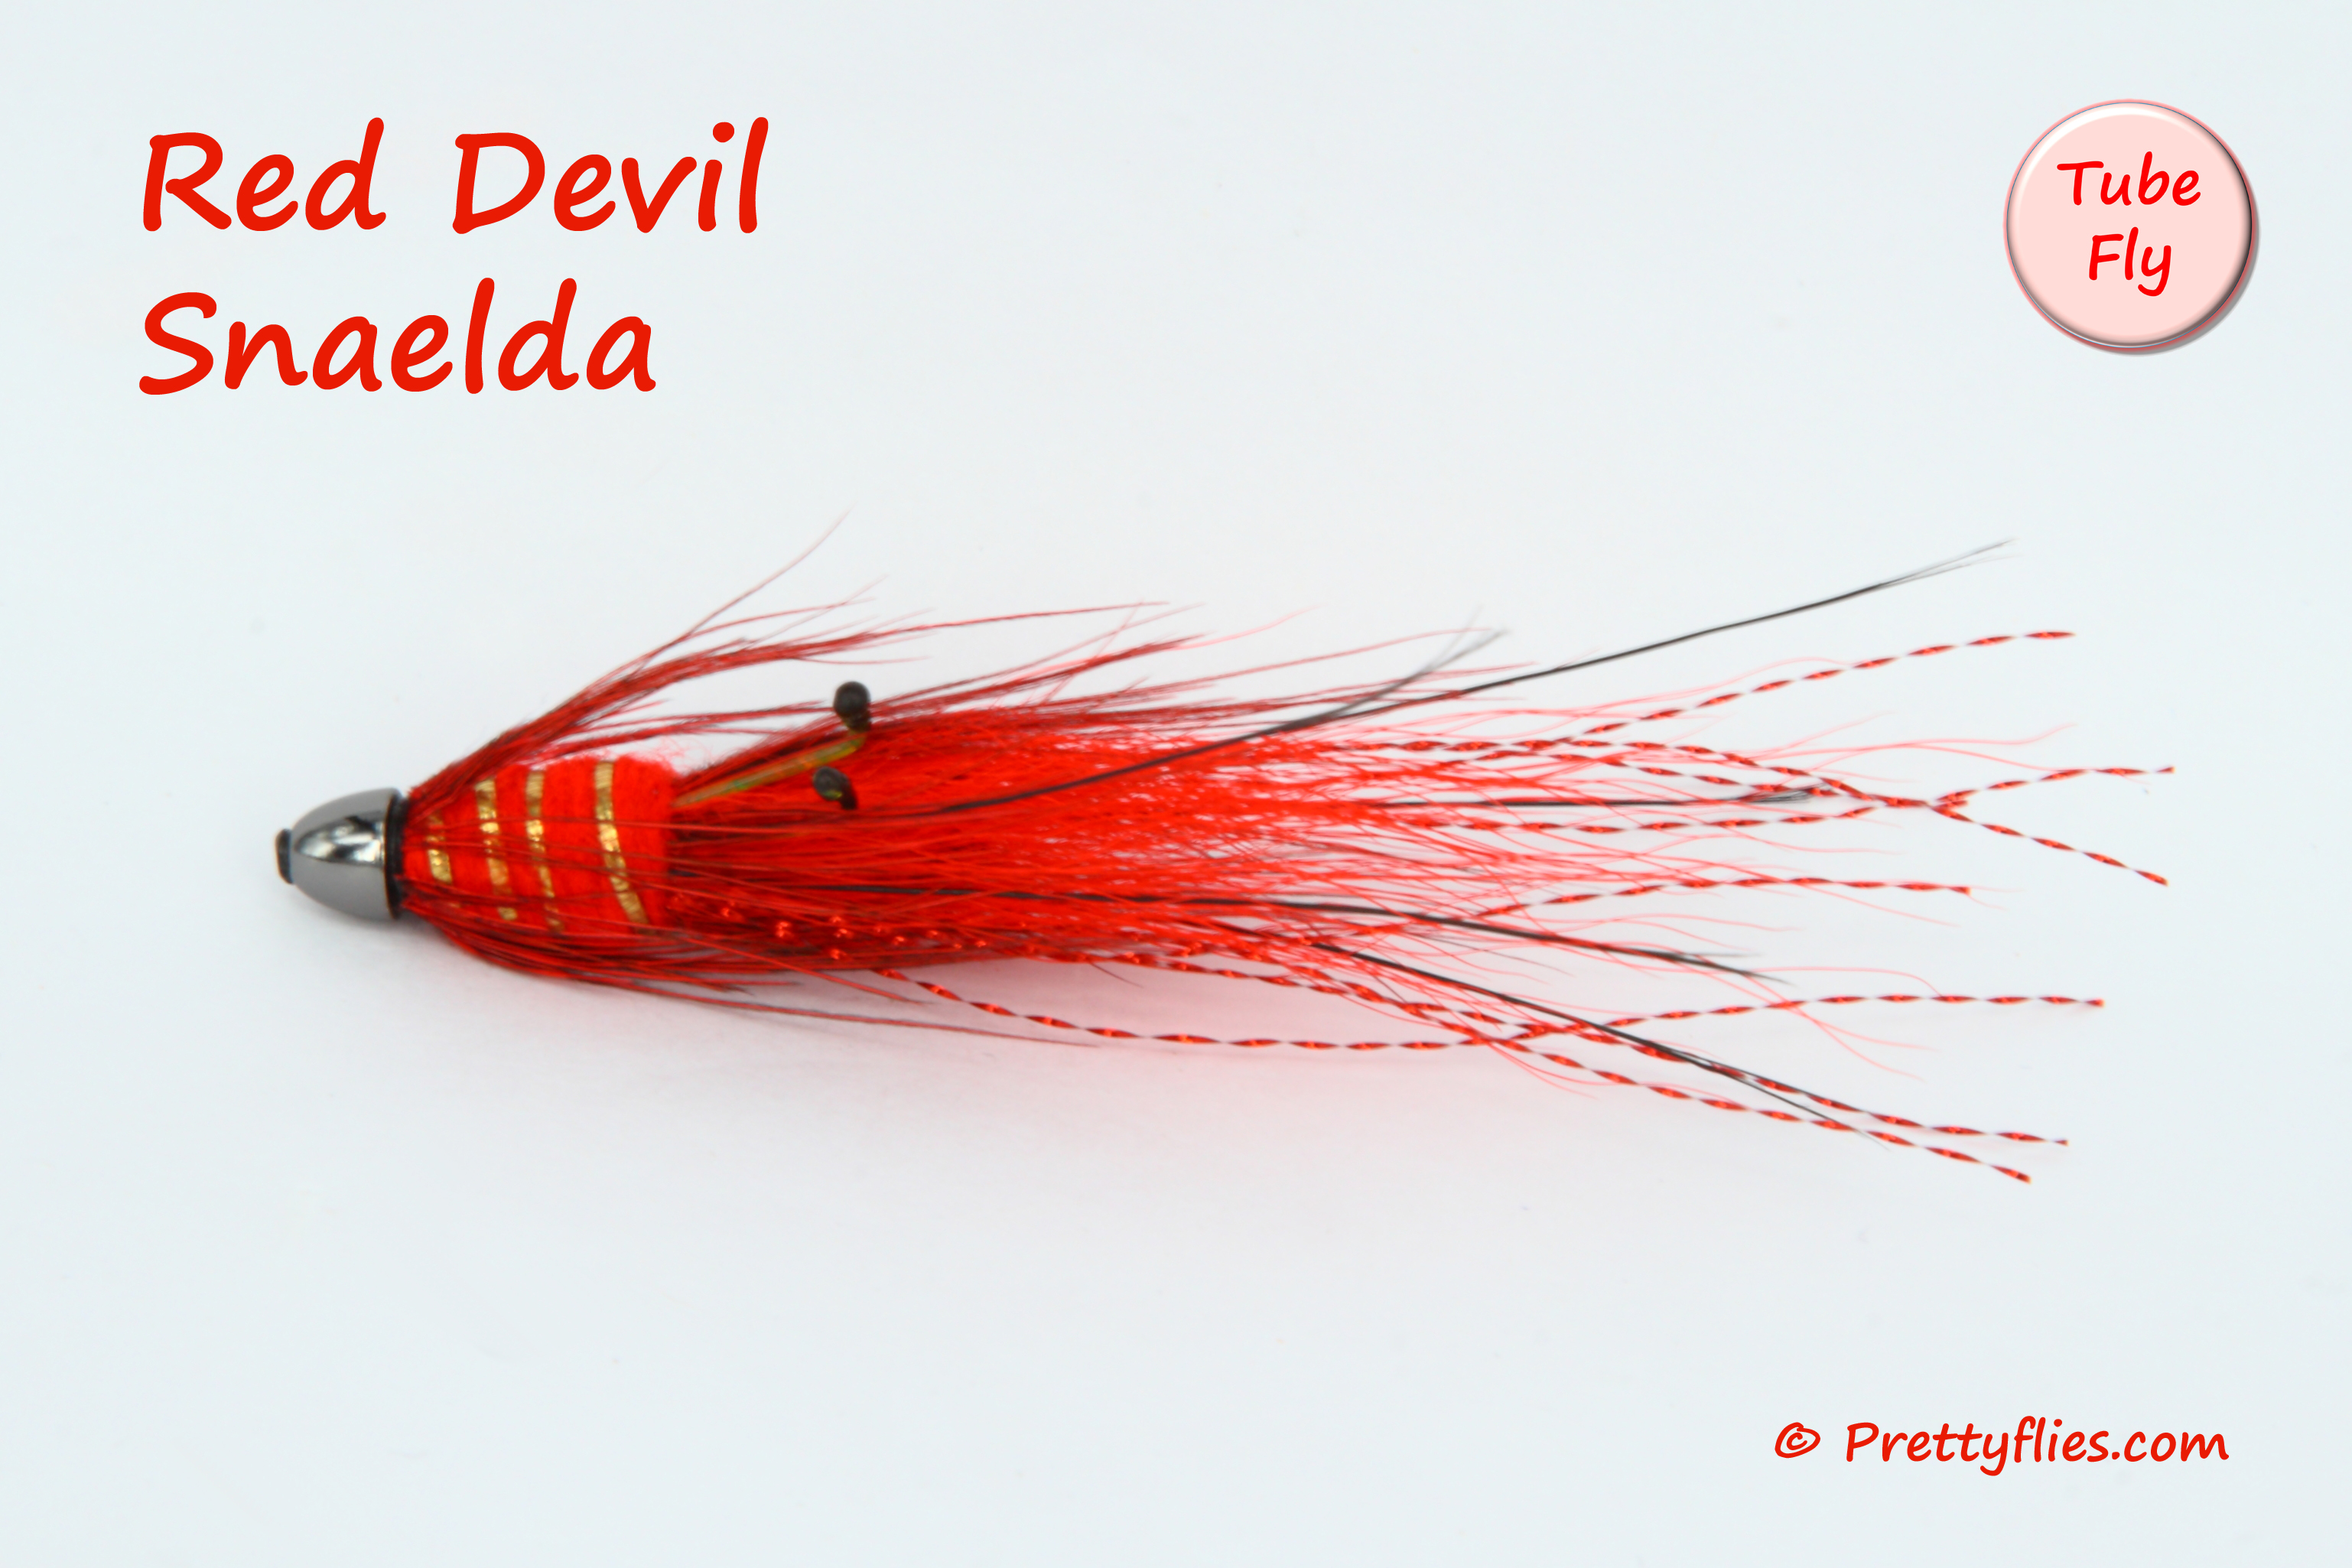 Red Devil Snaelda copy.jpg